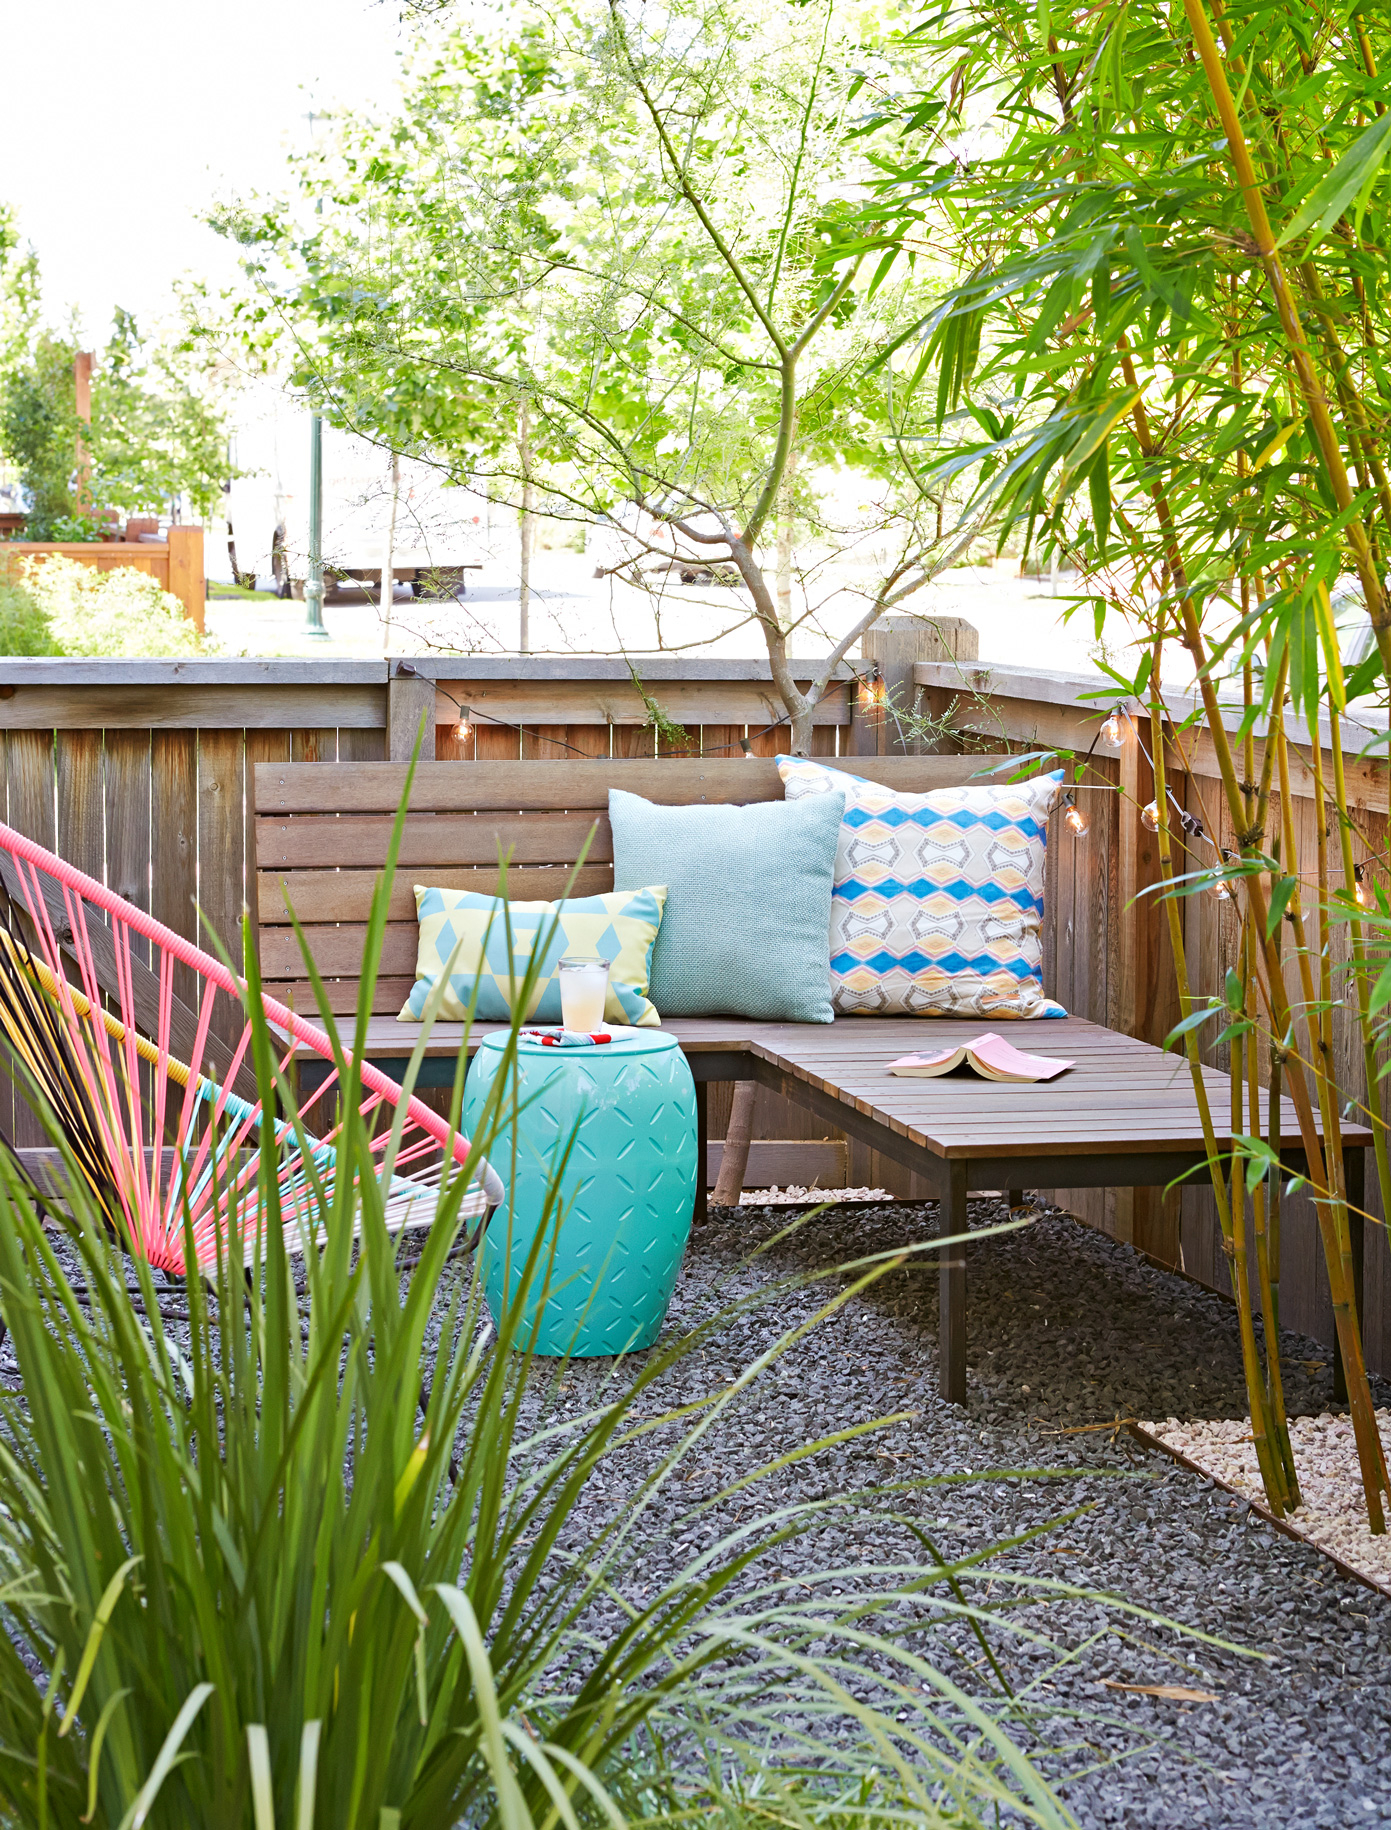 23 Inexpensive Ways To Dress Up Your Backyard in 16 Genius Tricks of How to Build Backyard Decor On A Budget